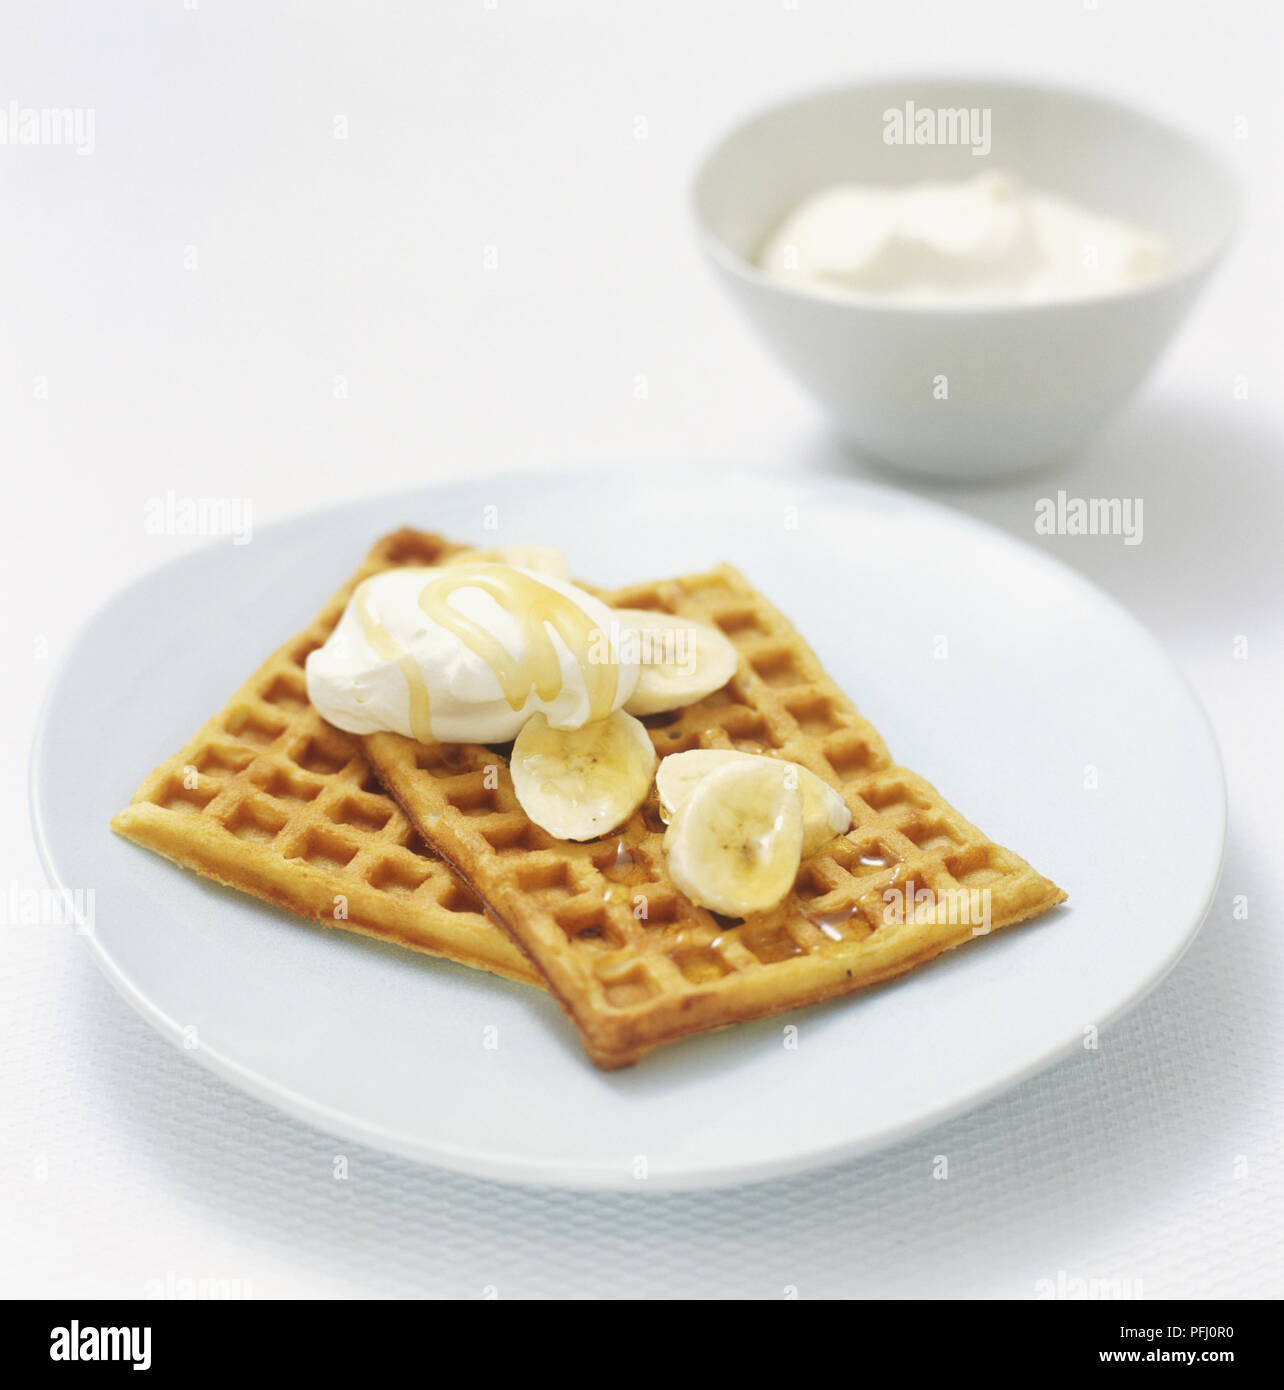 Belgian waffles served with whipped cream, banana slices and golden syrup, high angle view - Stock Image